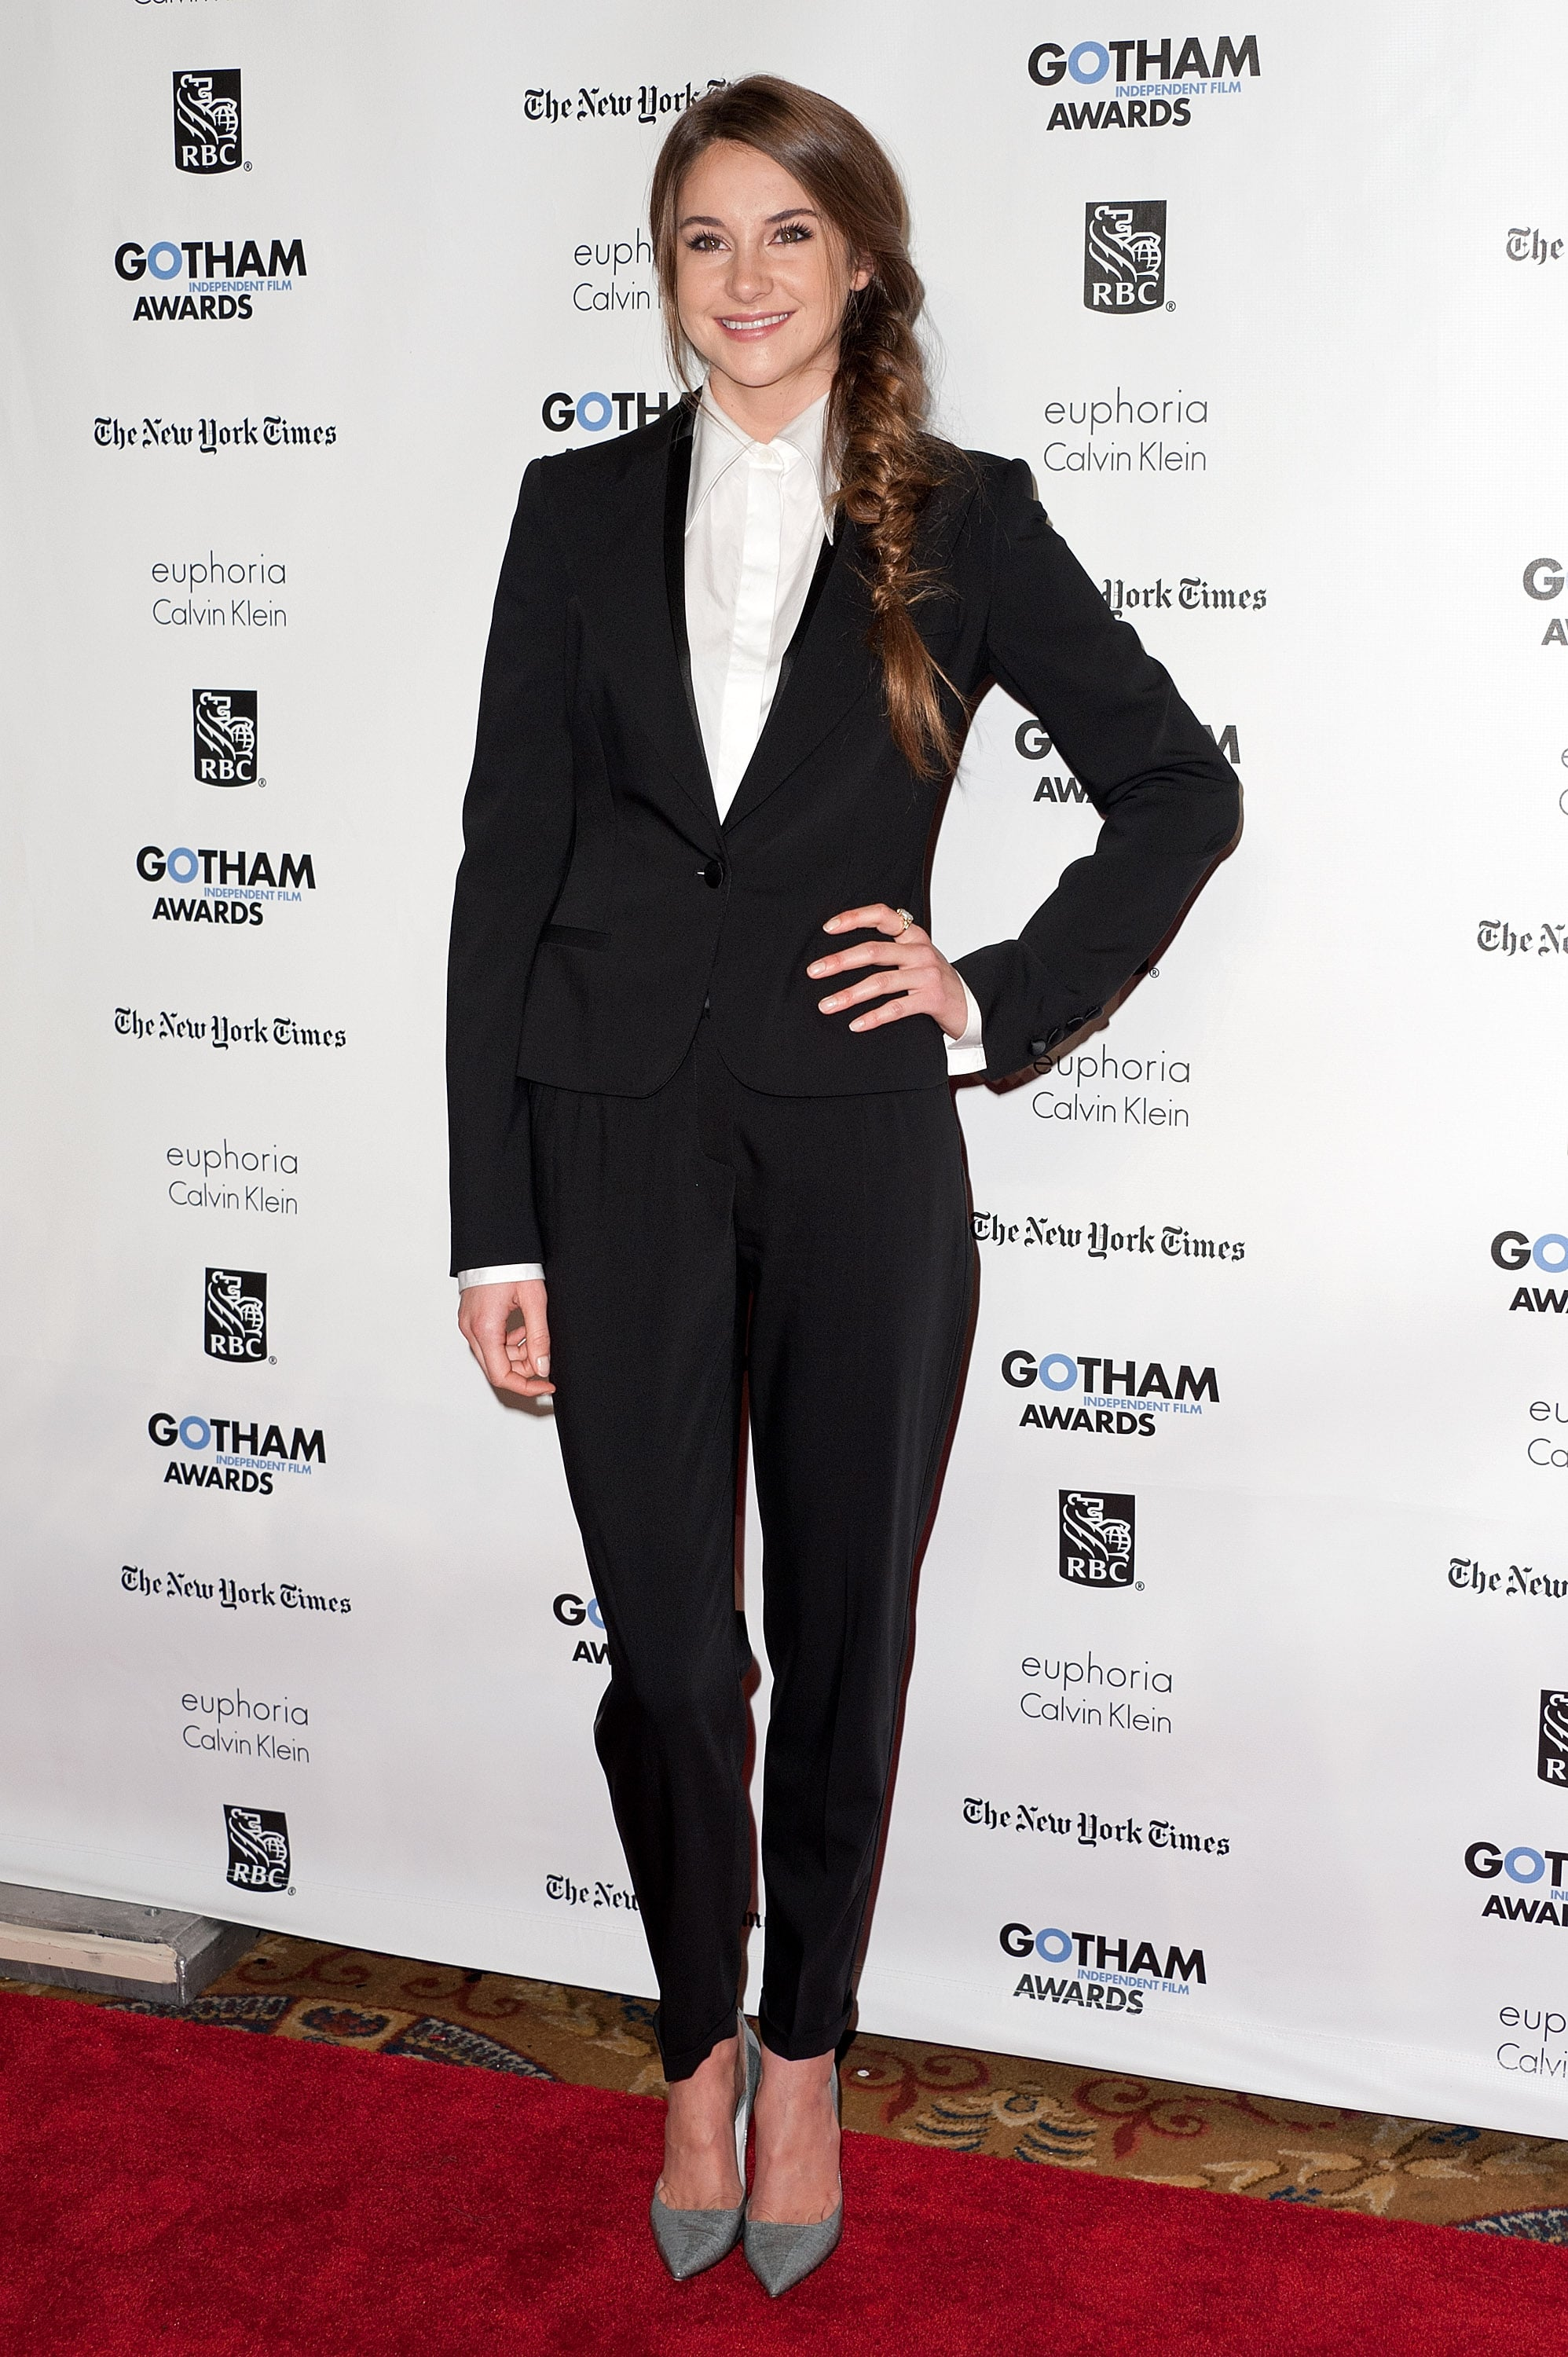 Shailene Woodley in a Dolce & Gabbana Suit at the 2011 Gotham Independent Film Awards